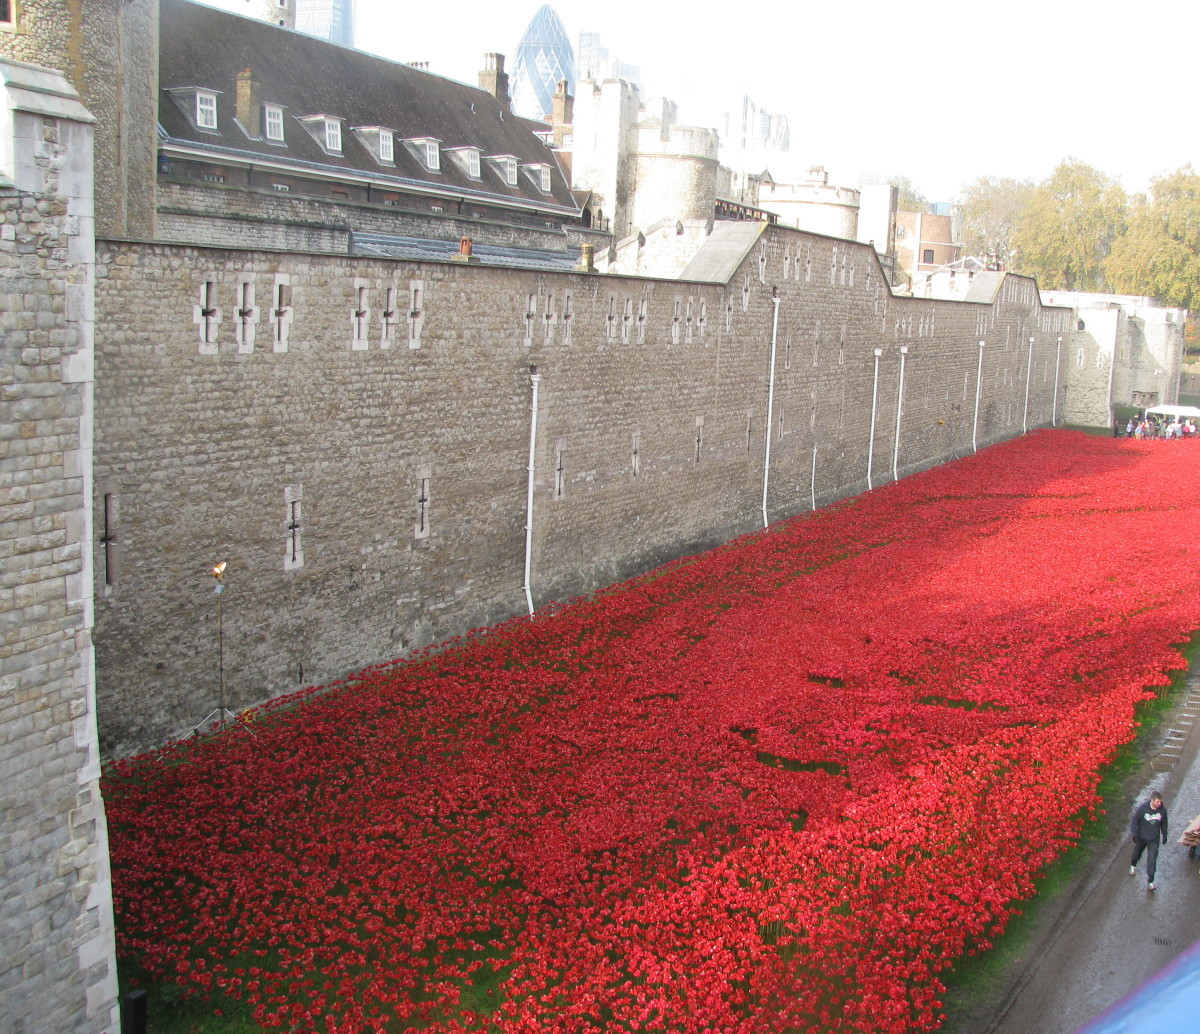 Remembrance With a Sea of Poppies: Art Installation at Tower of London Commemorating Perished Soldiers of World War I